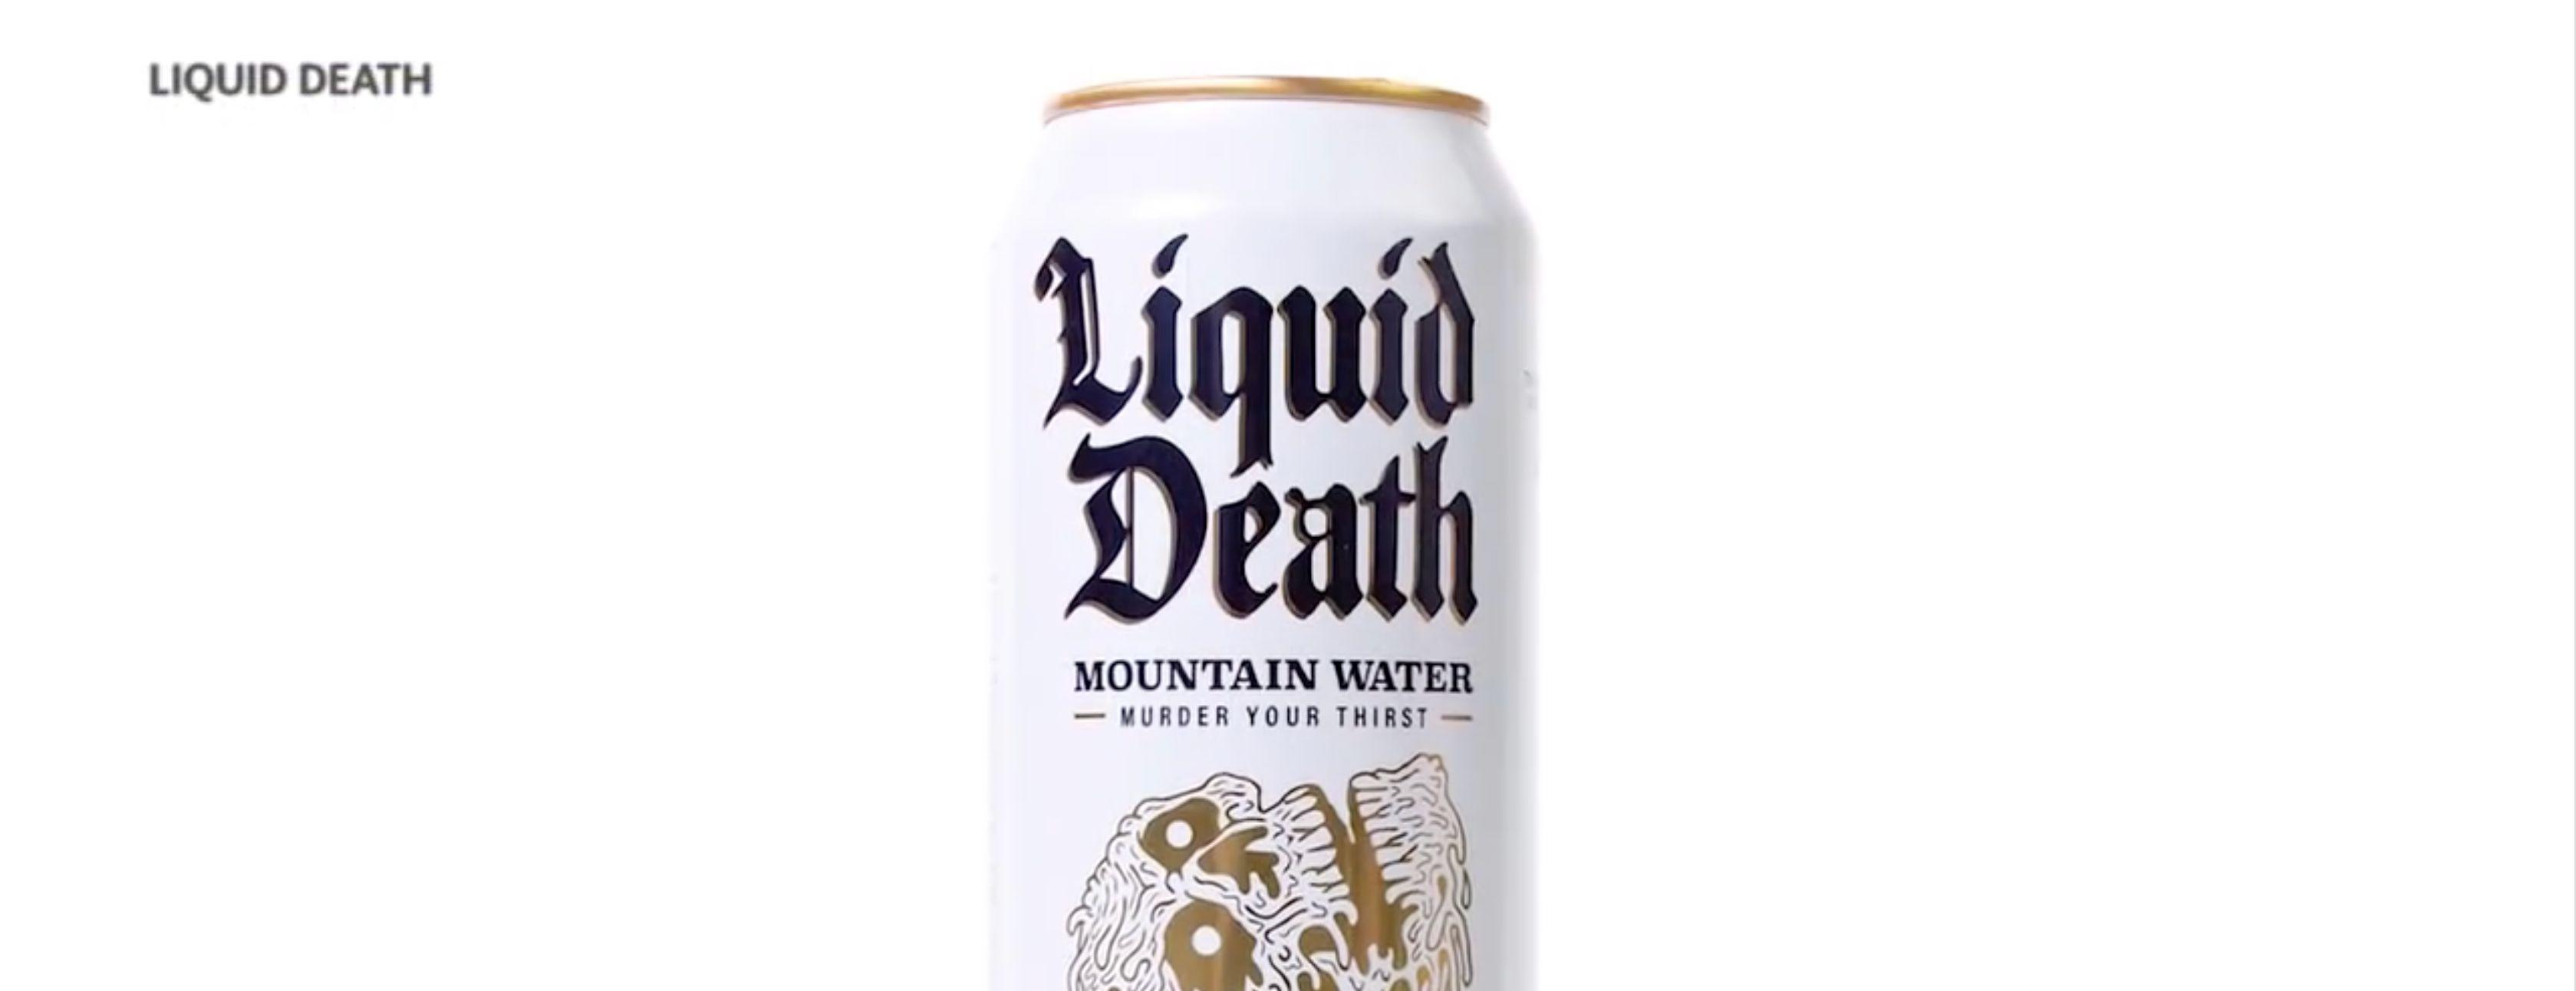 Water in a can: Liquid Death is cool and eco-friendly